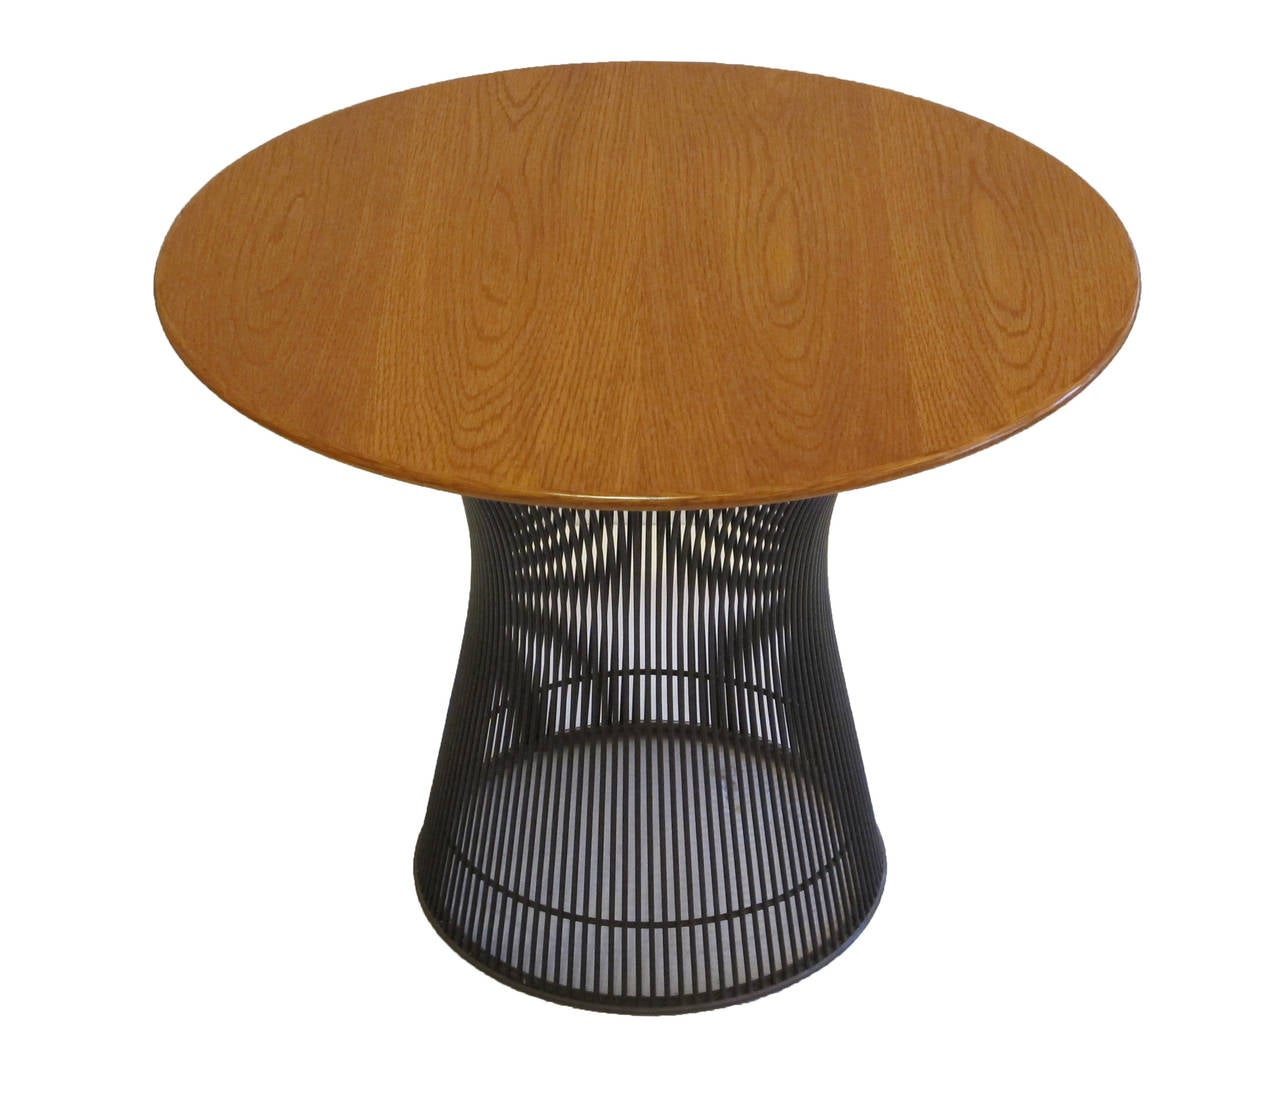 Oak and Bronze Side Table by Warren Platner for Knoll at 1stdibs